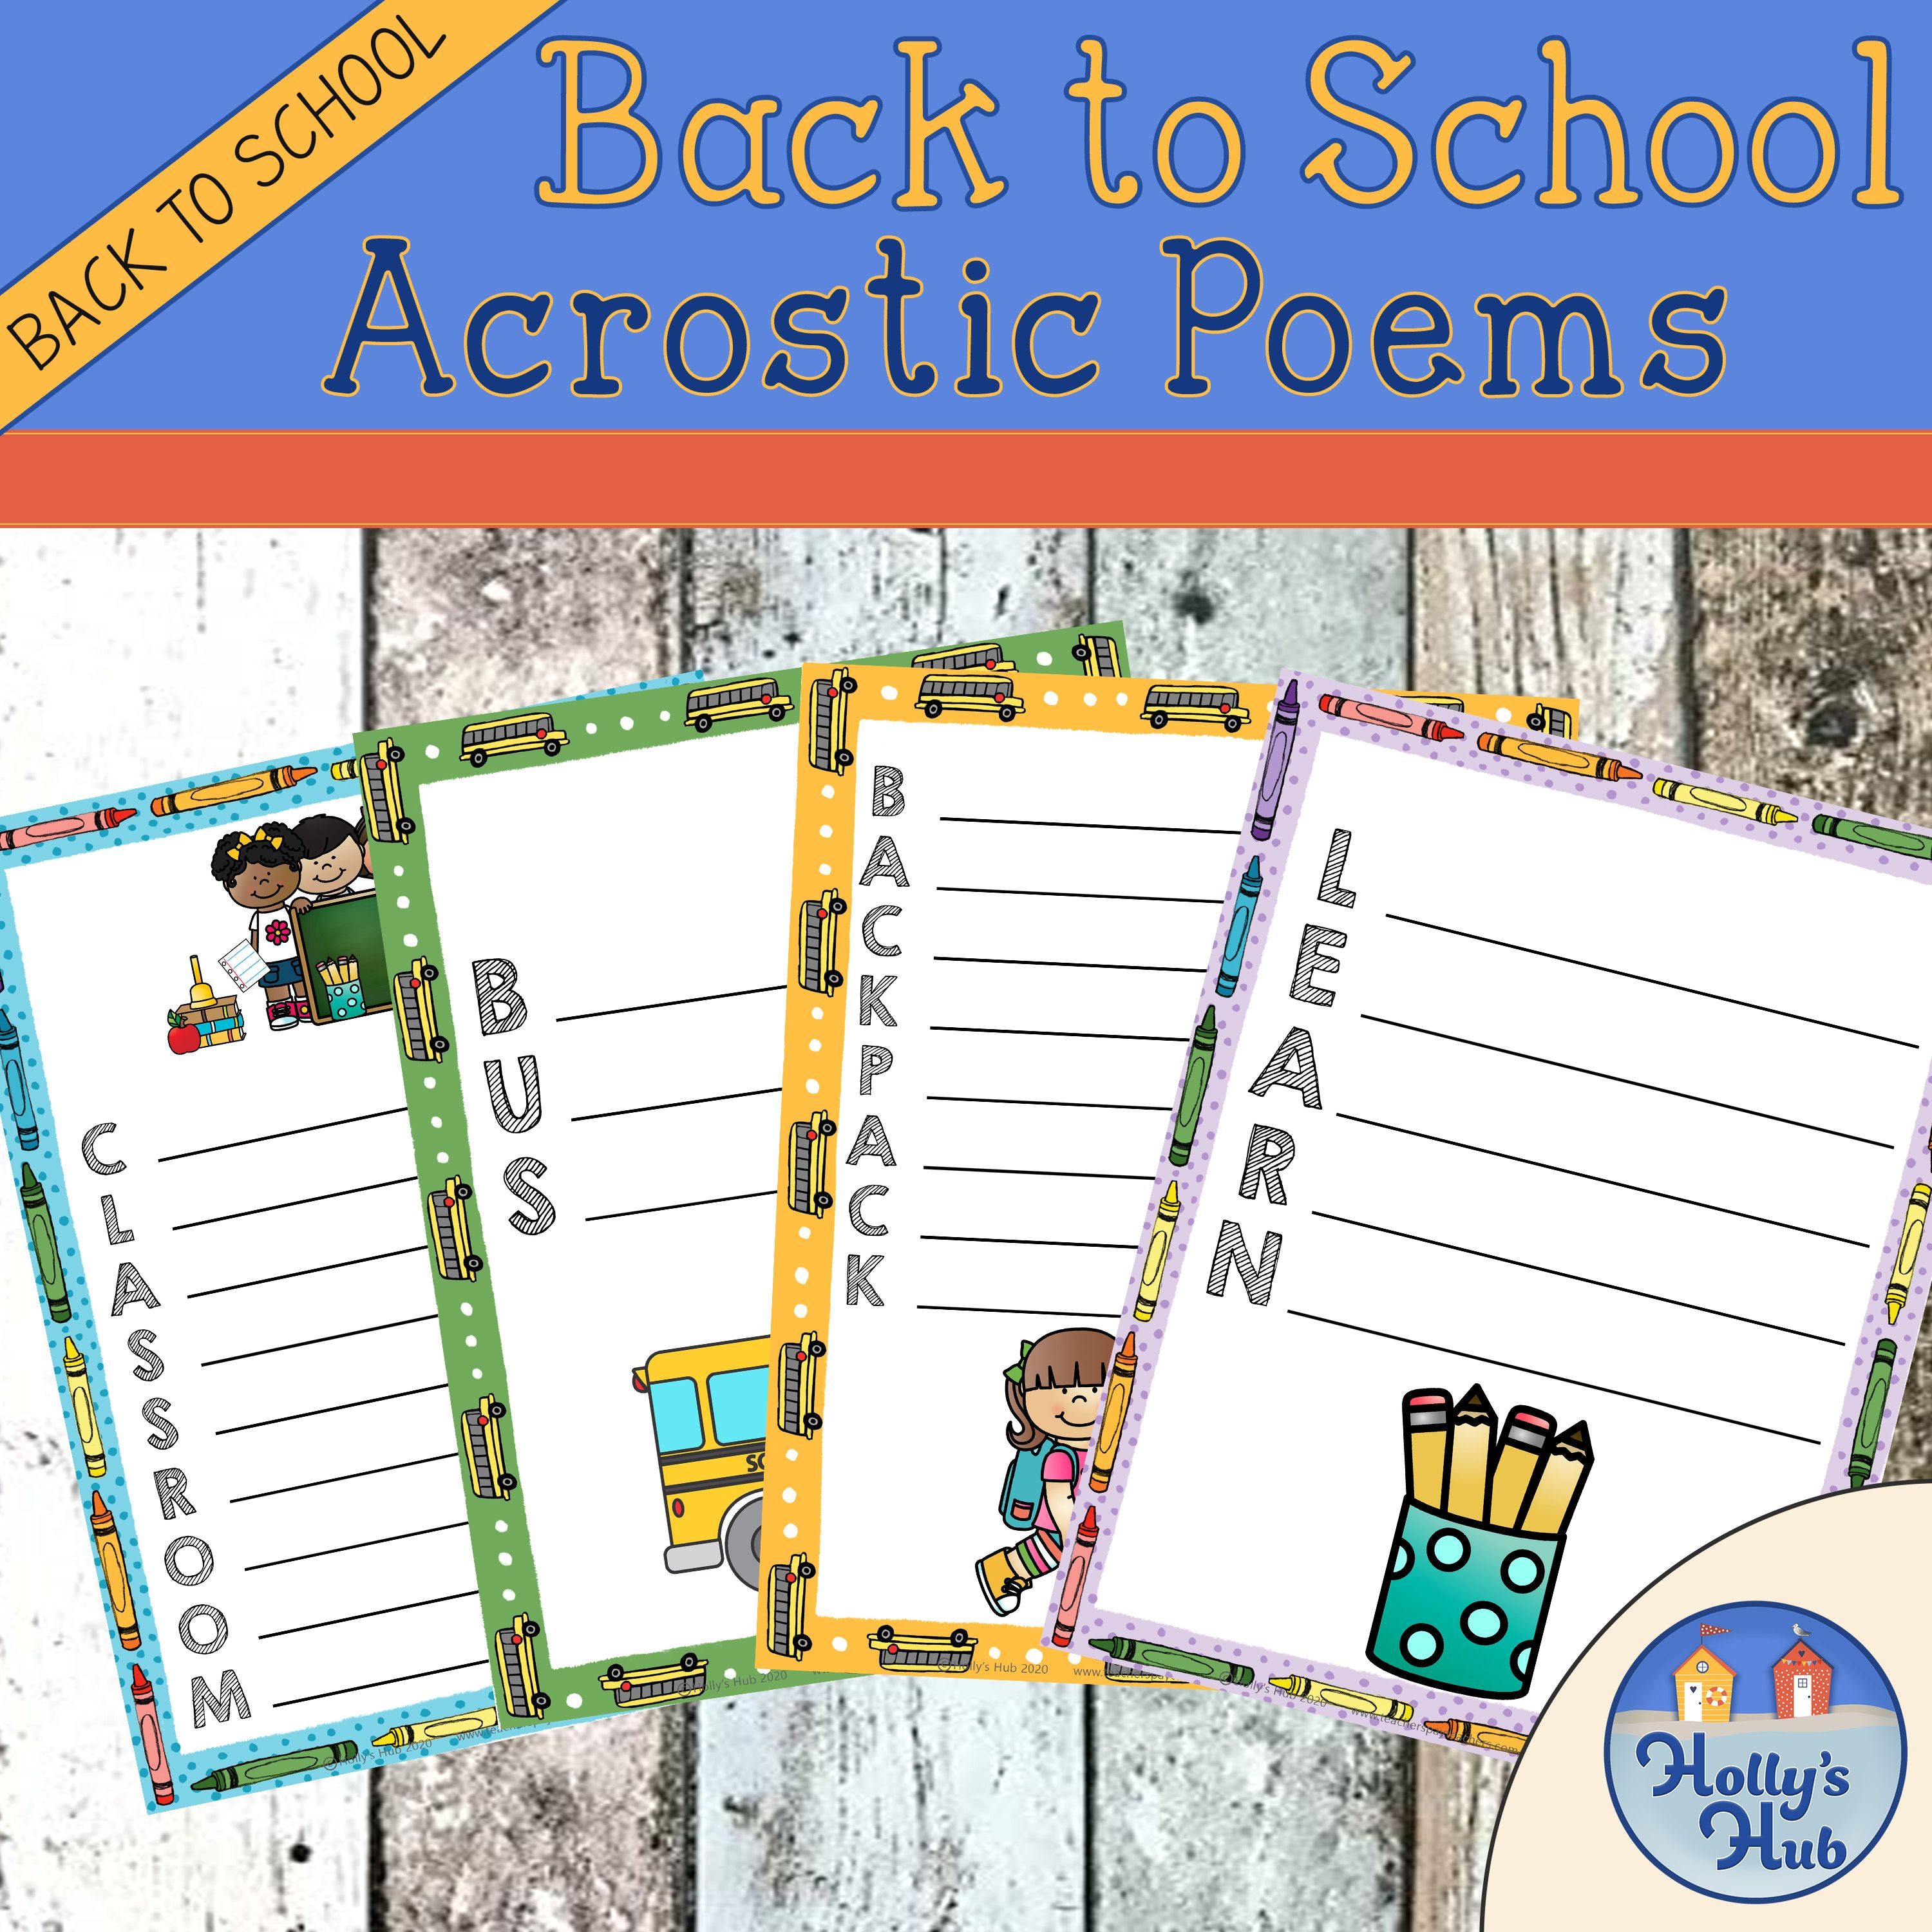 First Day Back To School Acrostic Poem Templates In 2020 Acrostic Poem Template Poem Template Acrostic